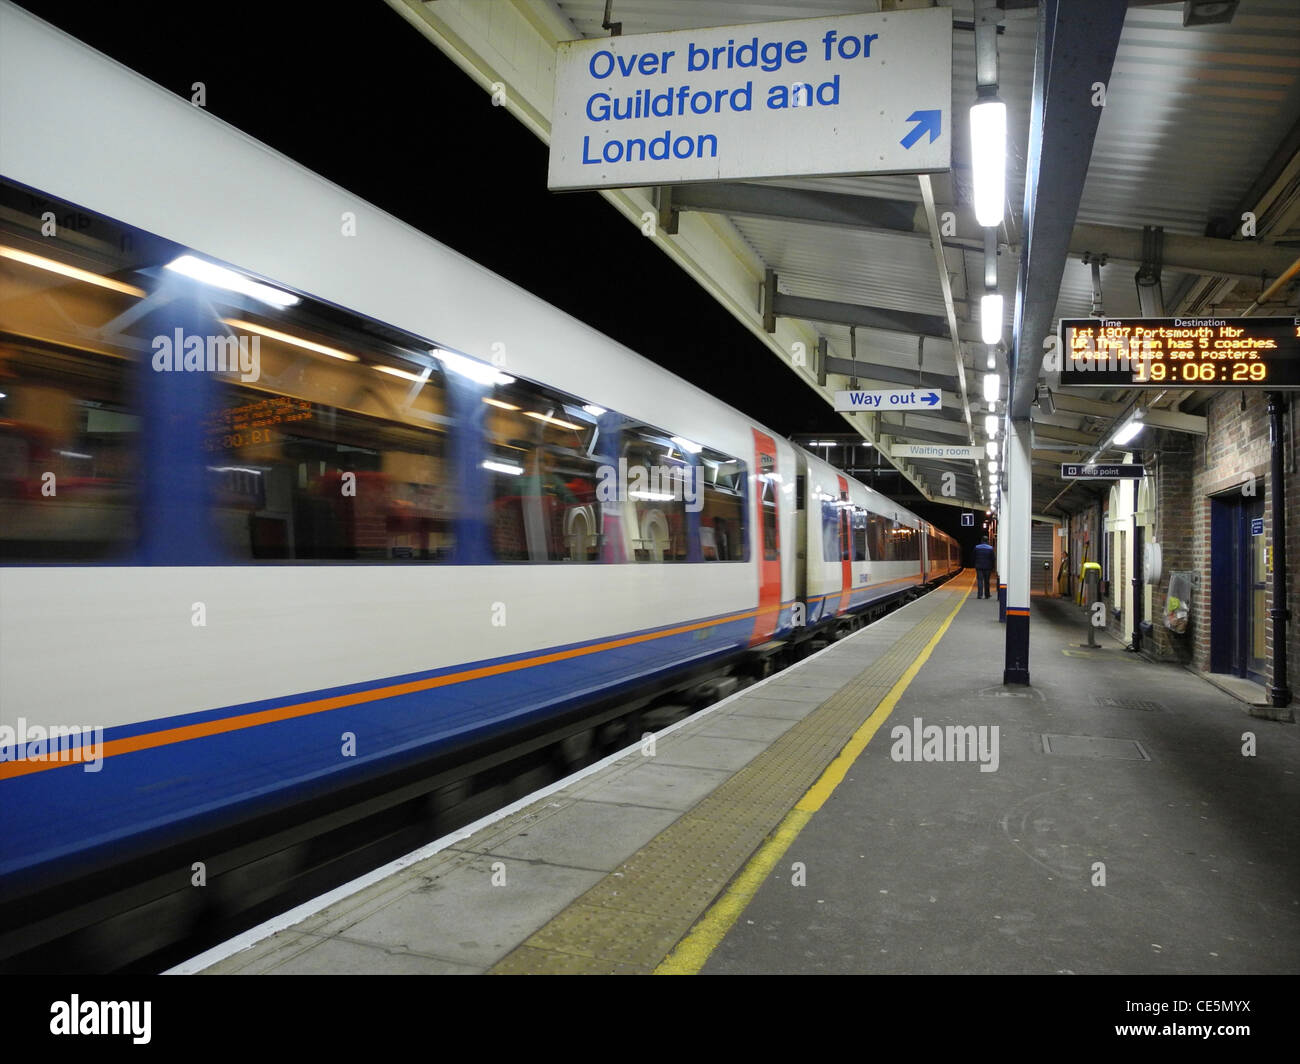 Passengers arriving on UK railway platform station EDITORIAL USE ONLY - Stock Image